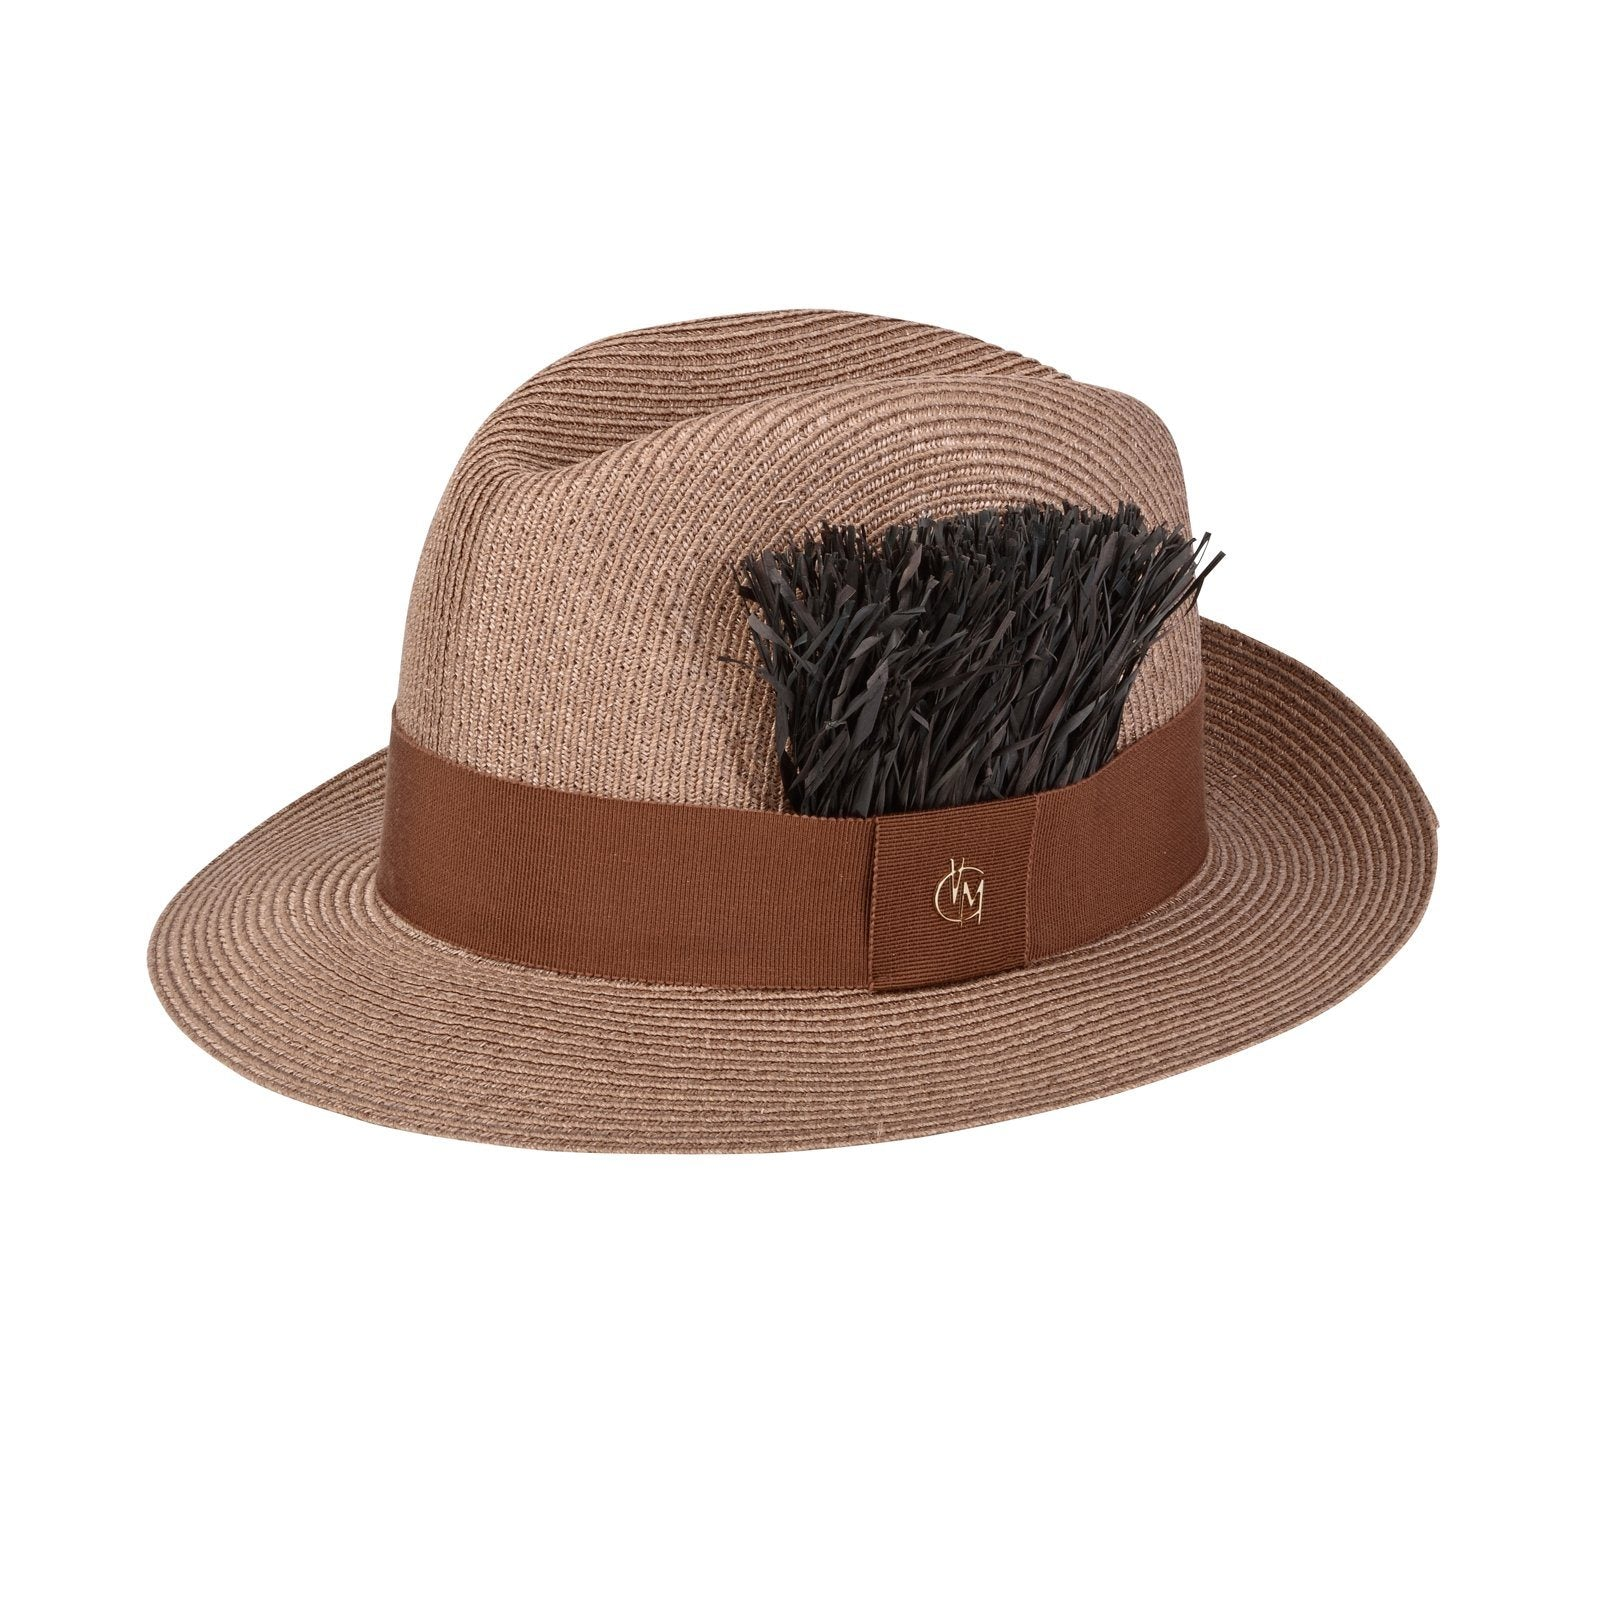 The Island Straw Fedora